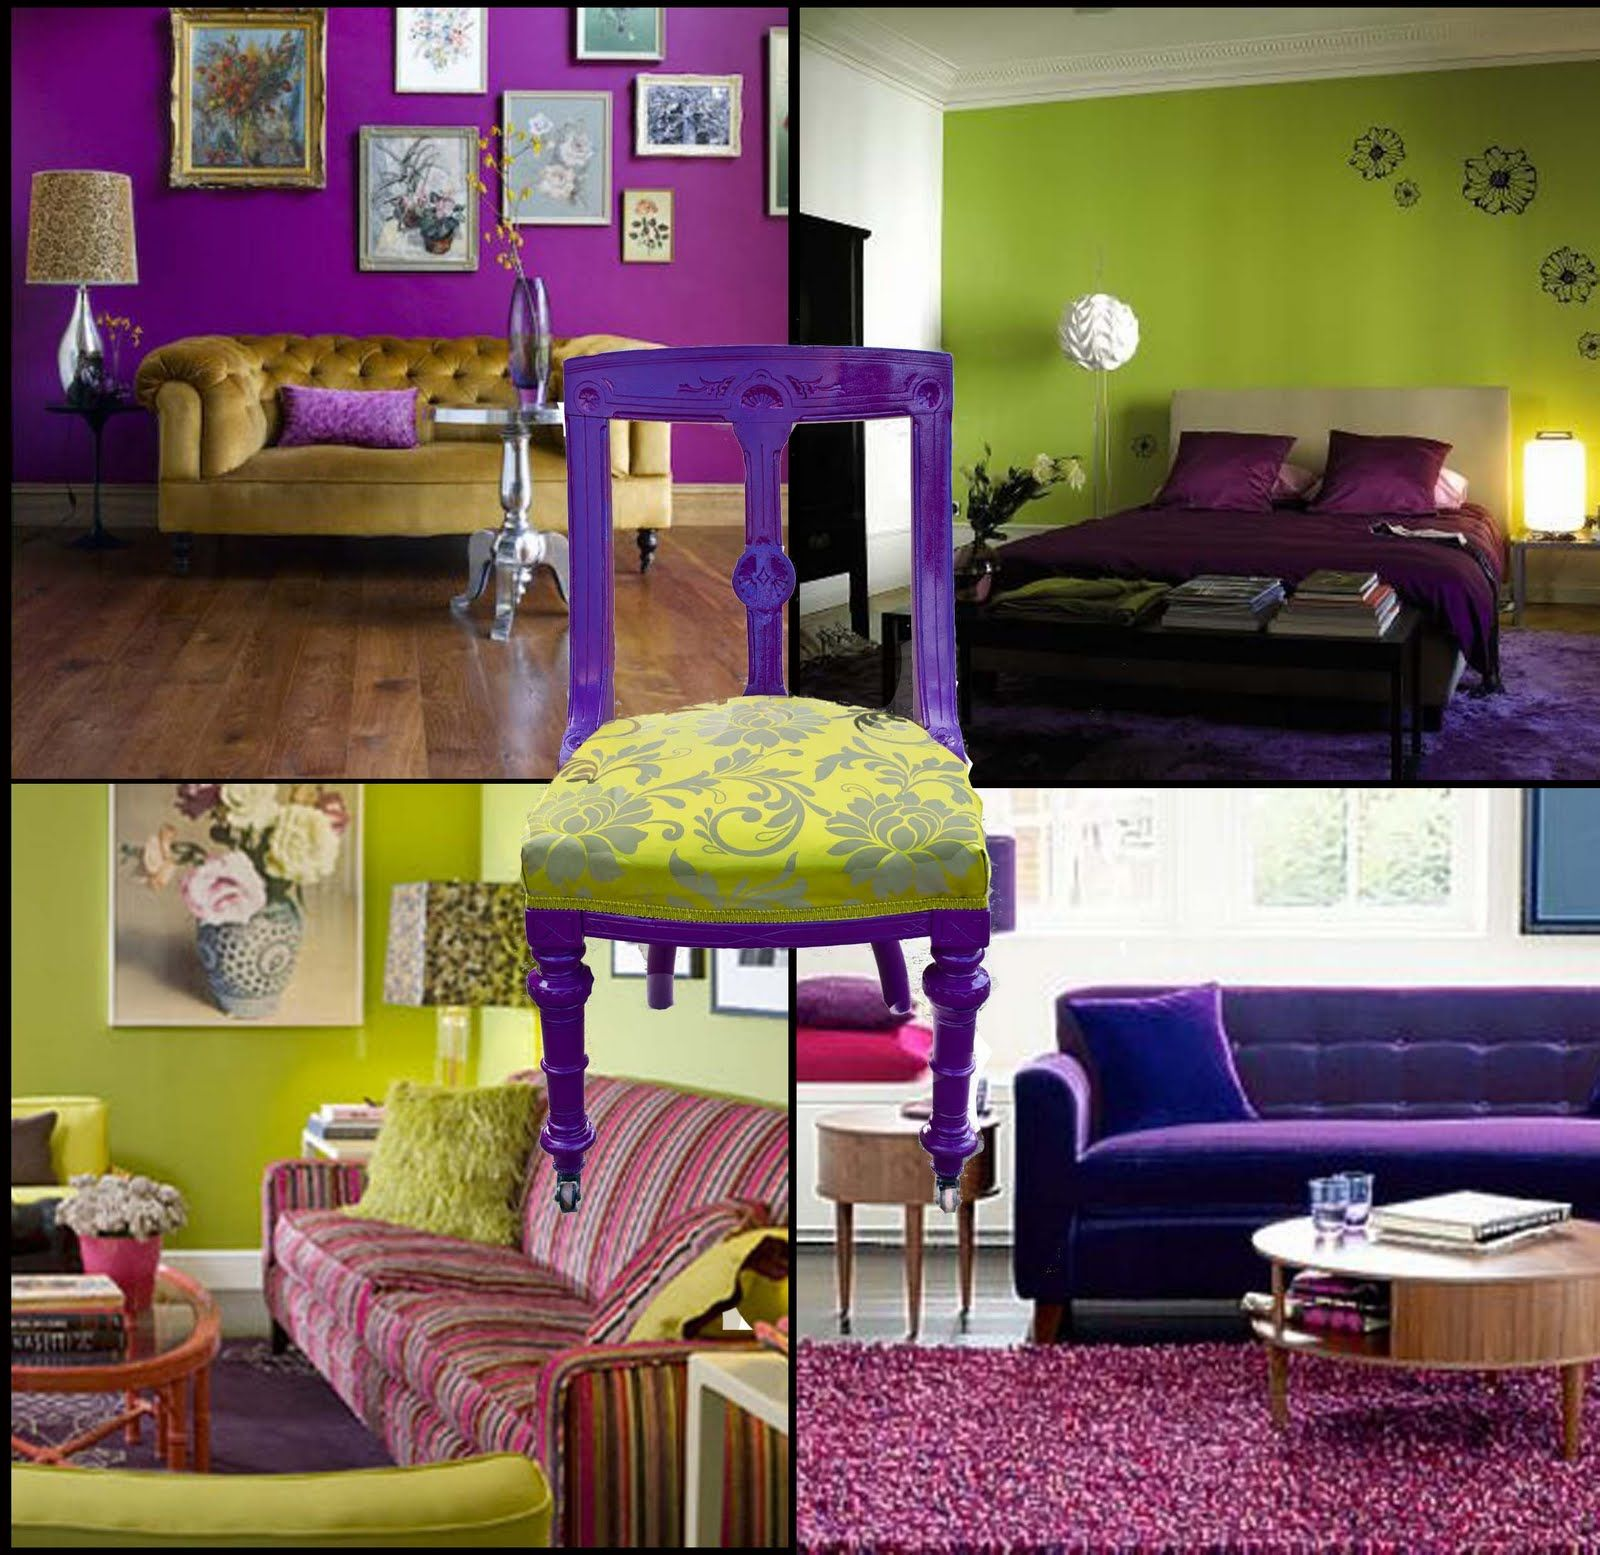 Very Colorful Bedroom: Very Cool Lime Green Purple Room Ideas!